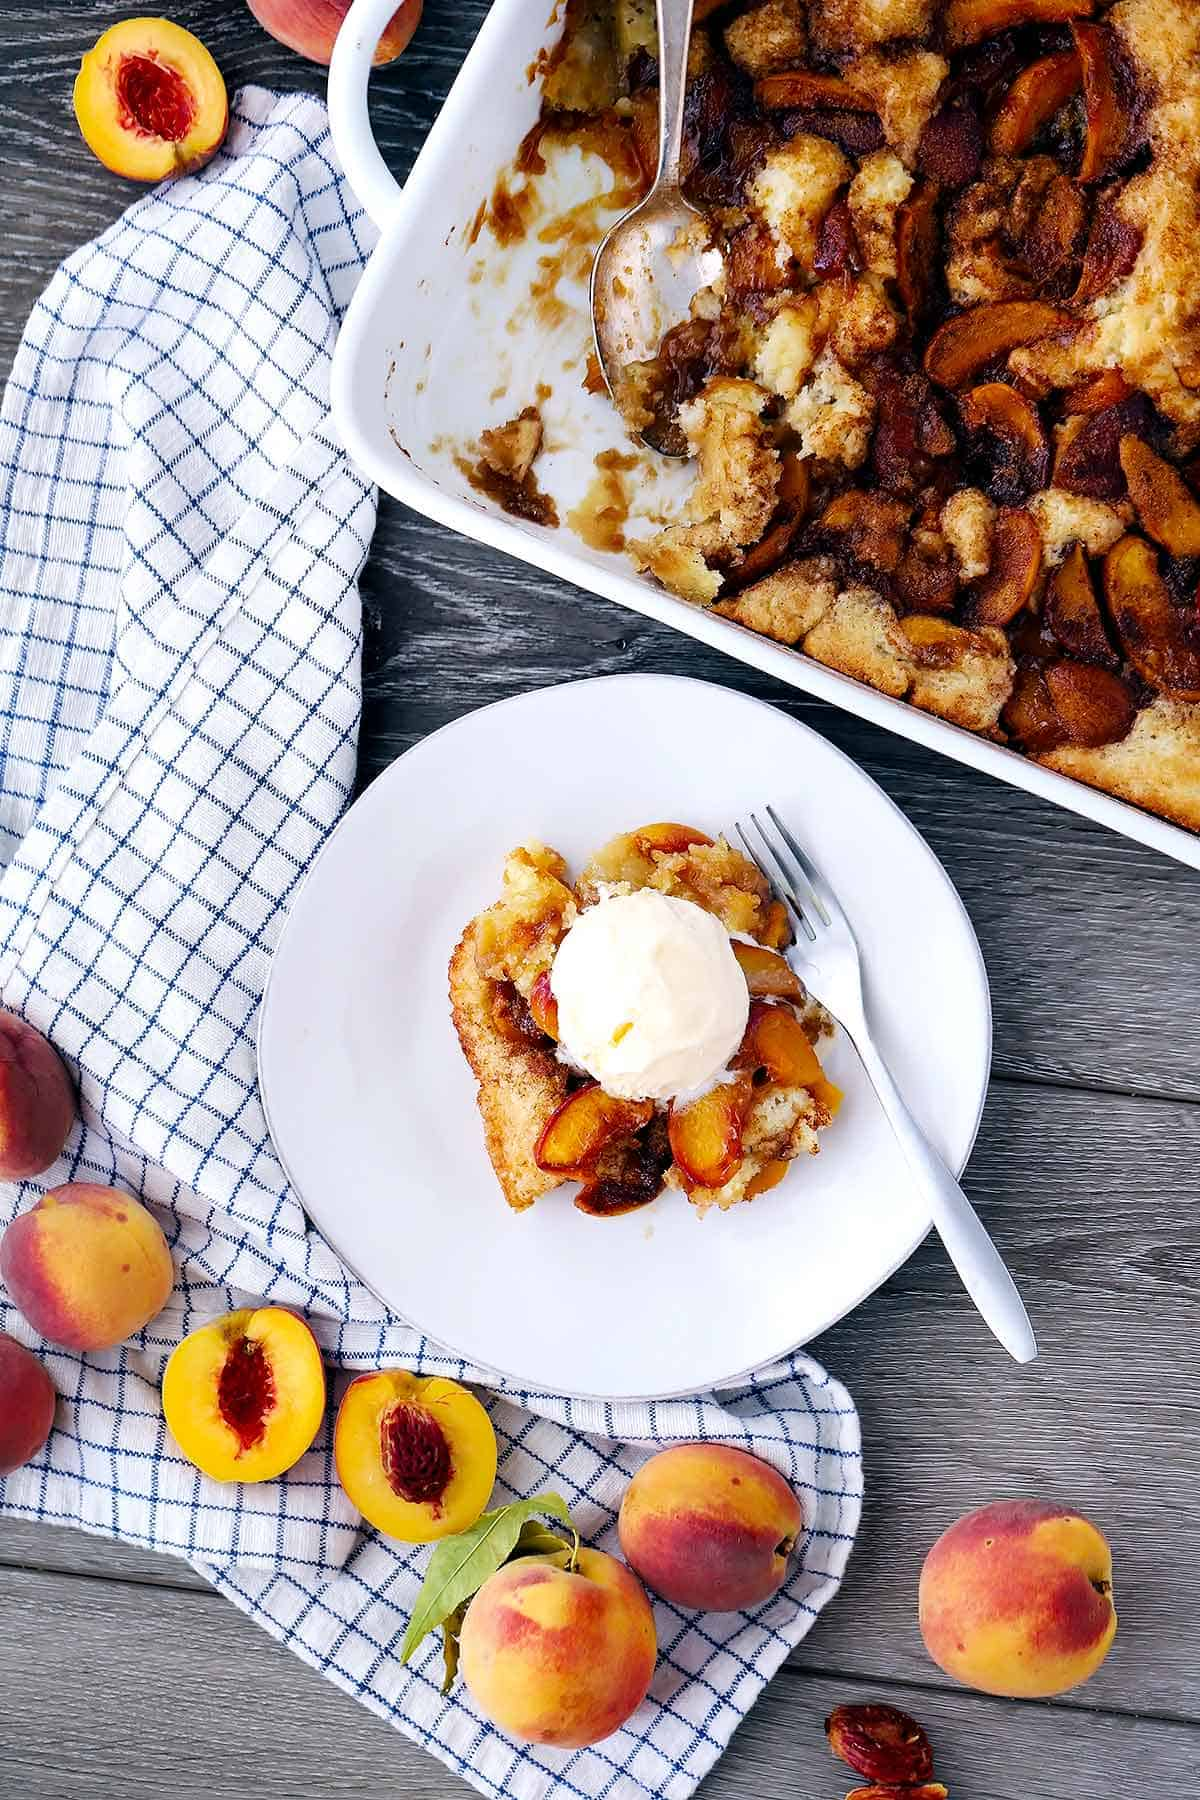 Peach cobbler flatlay image with vanilla ice cream on top and fresh peaches surrounding it.